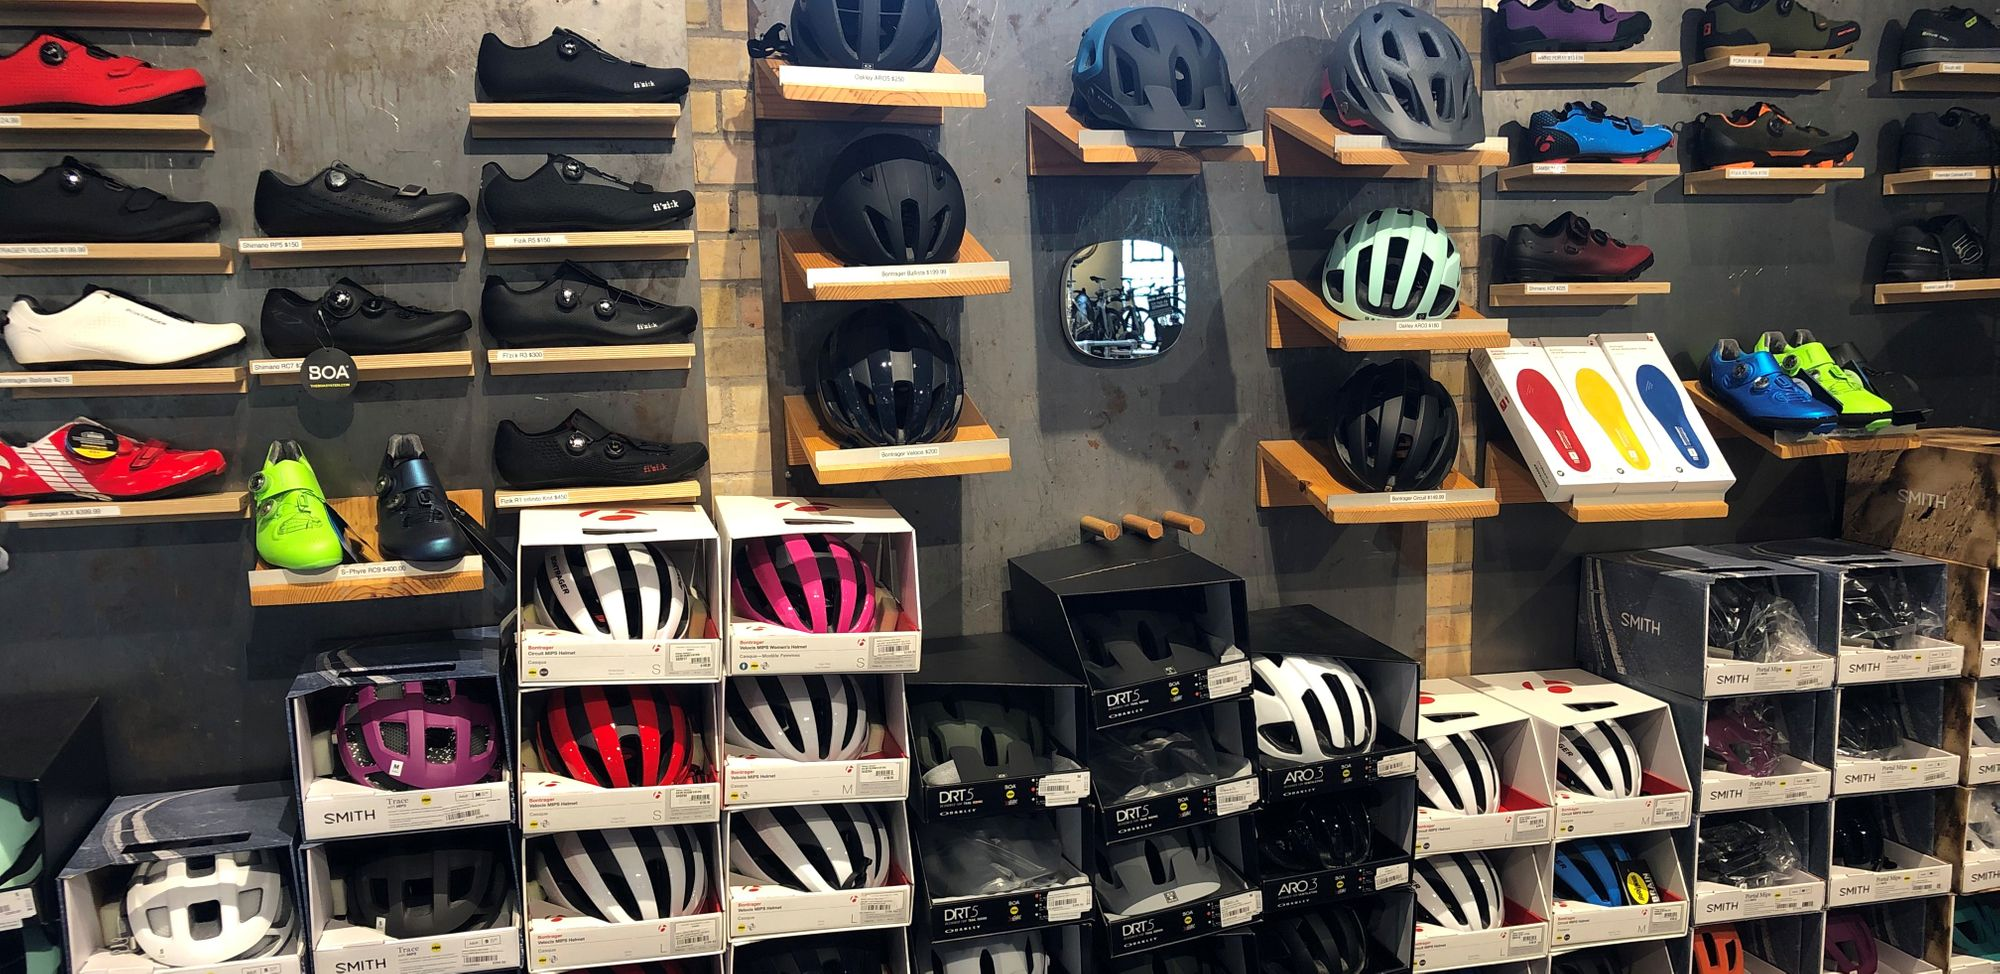 shoes and helmets.jpg